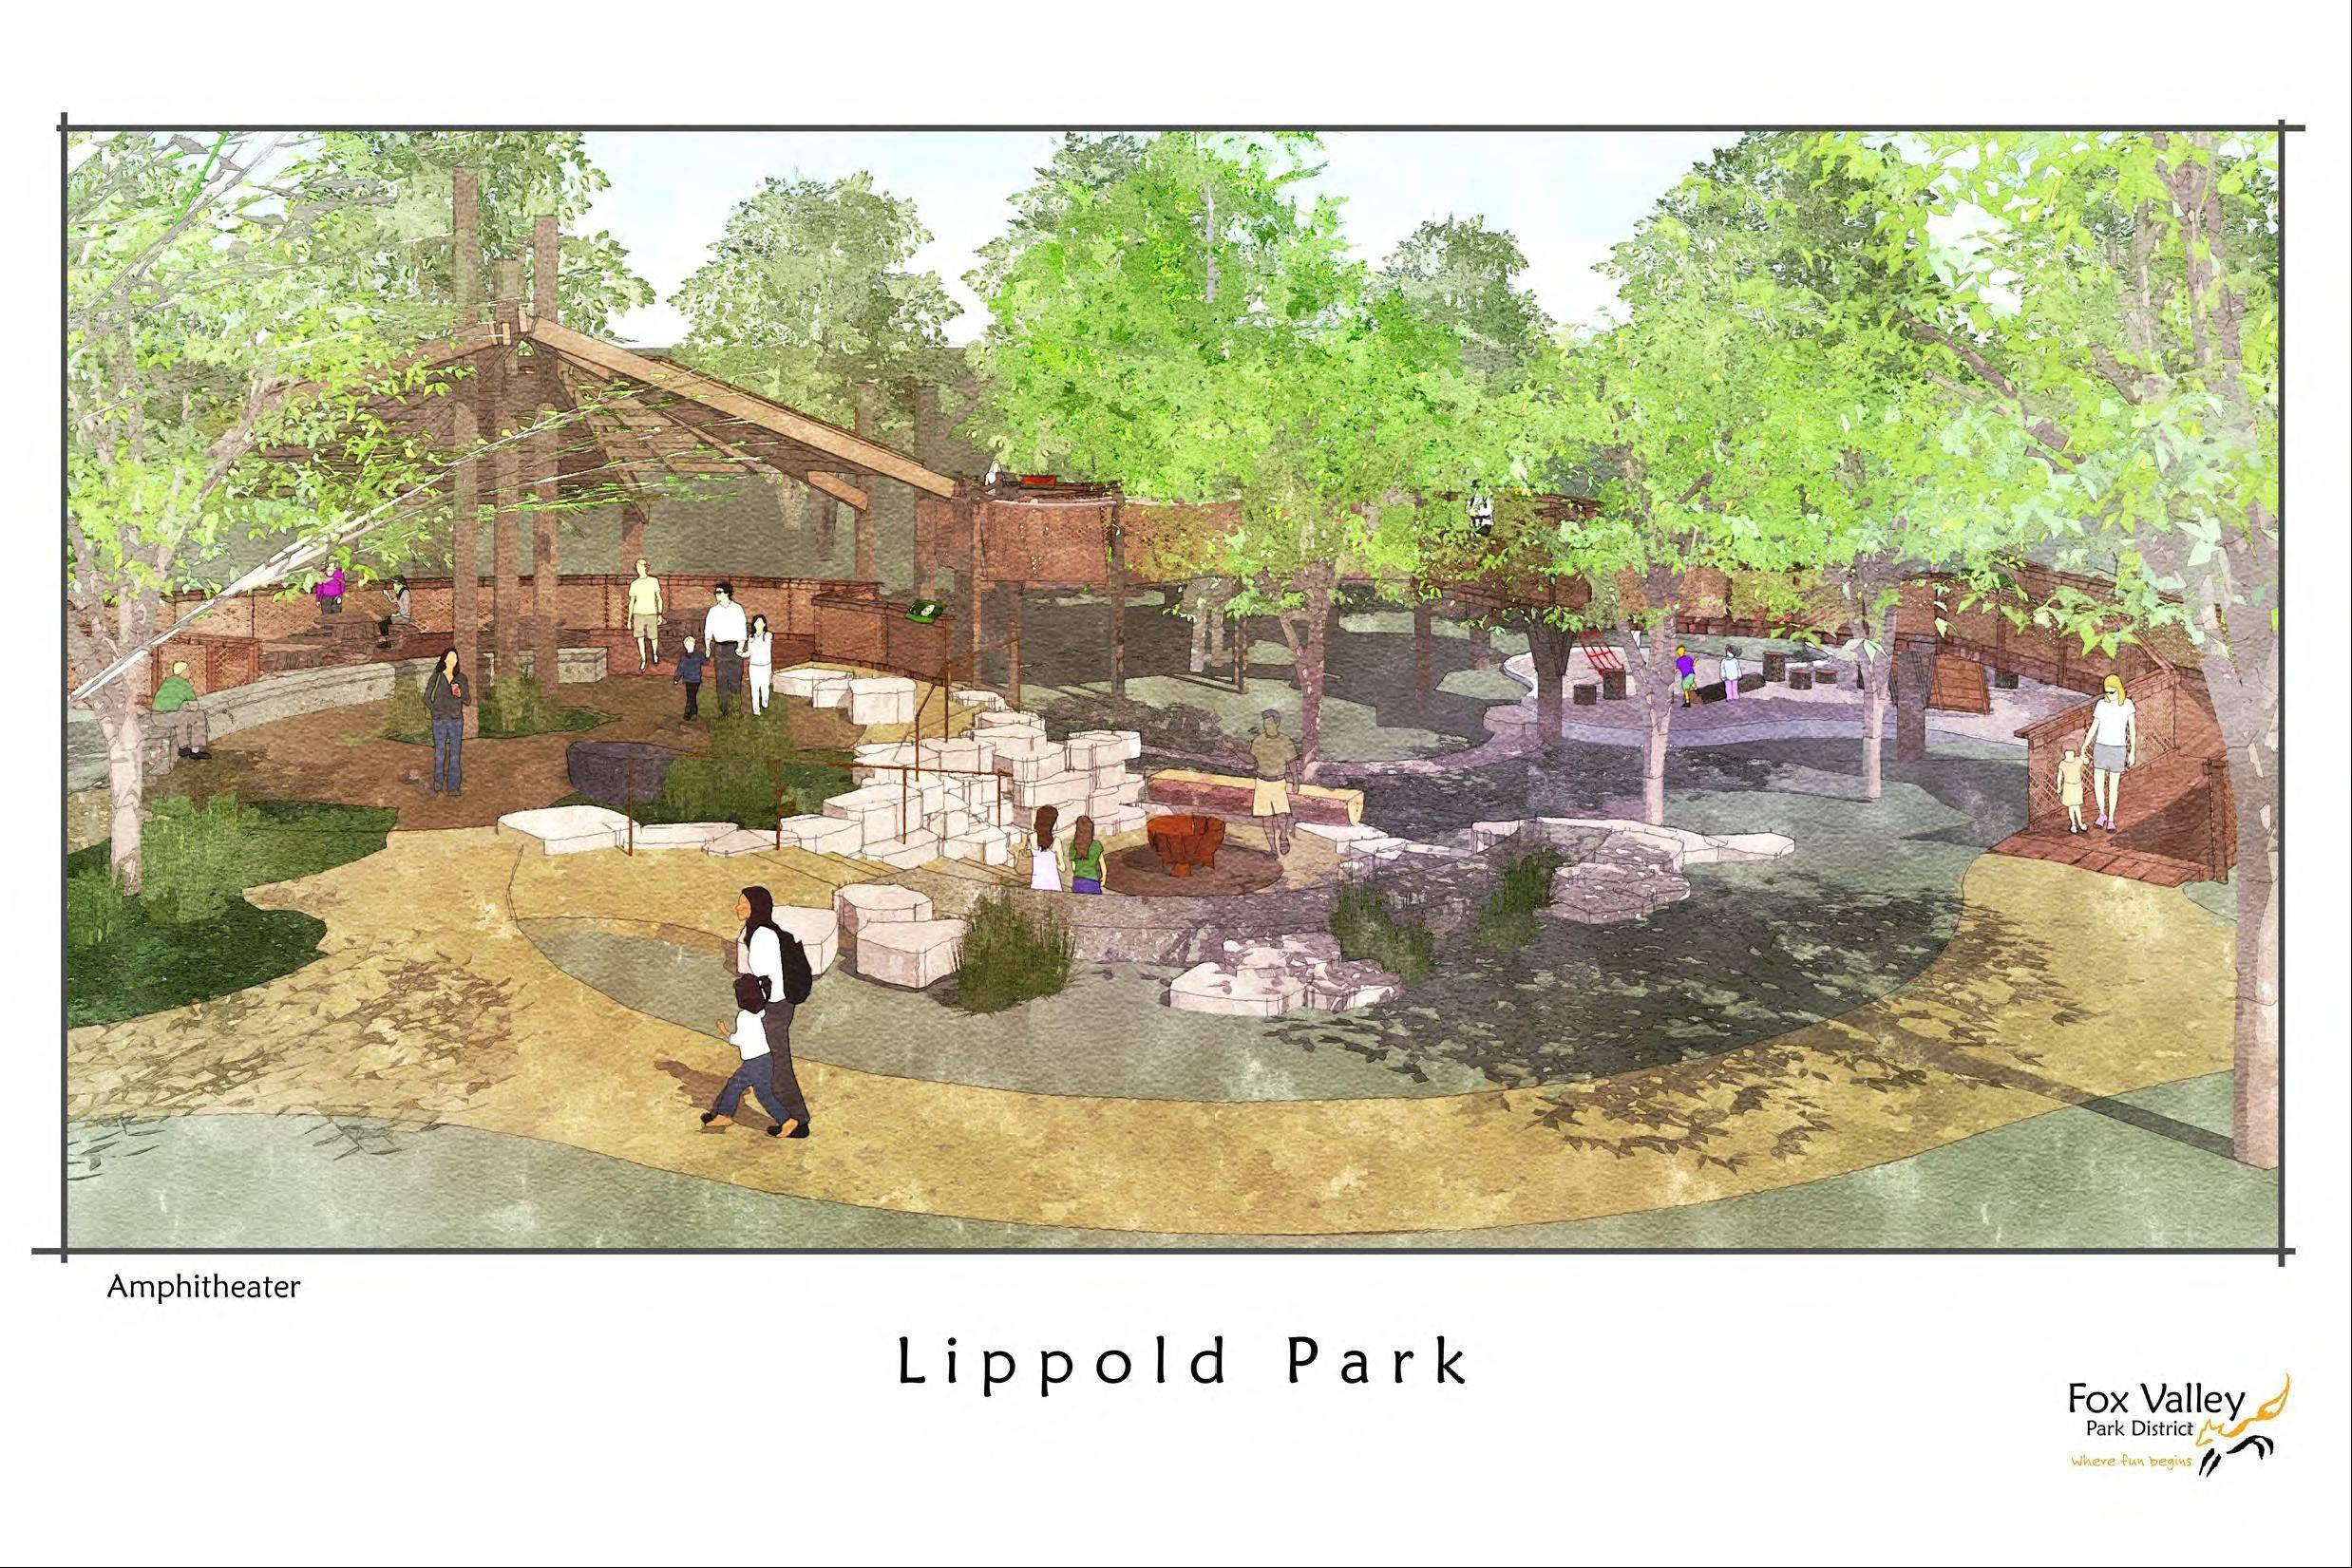 The Lippold Park project will include construction of a tree house-like structure in an amphitheater setting with interpretive displays and observation areas.